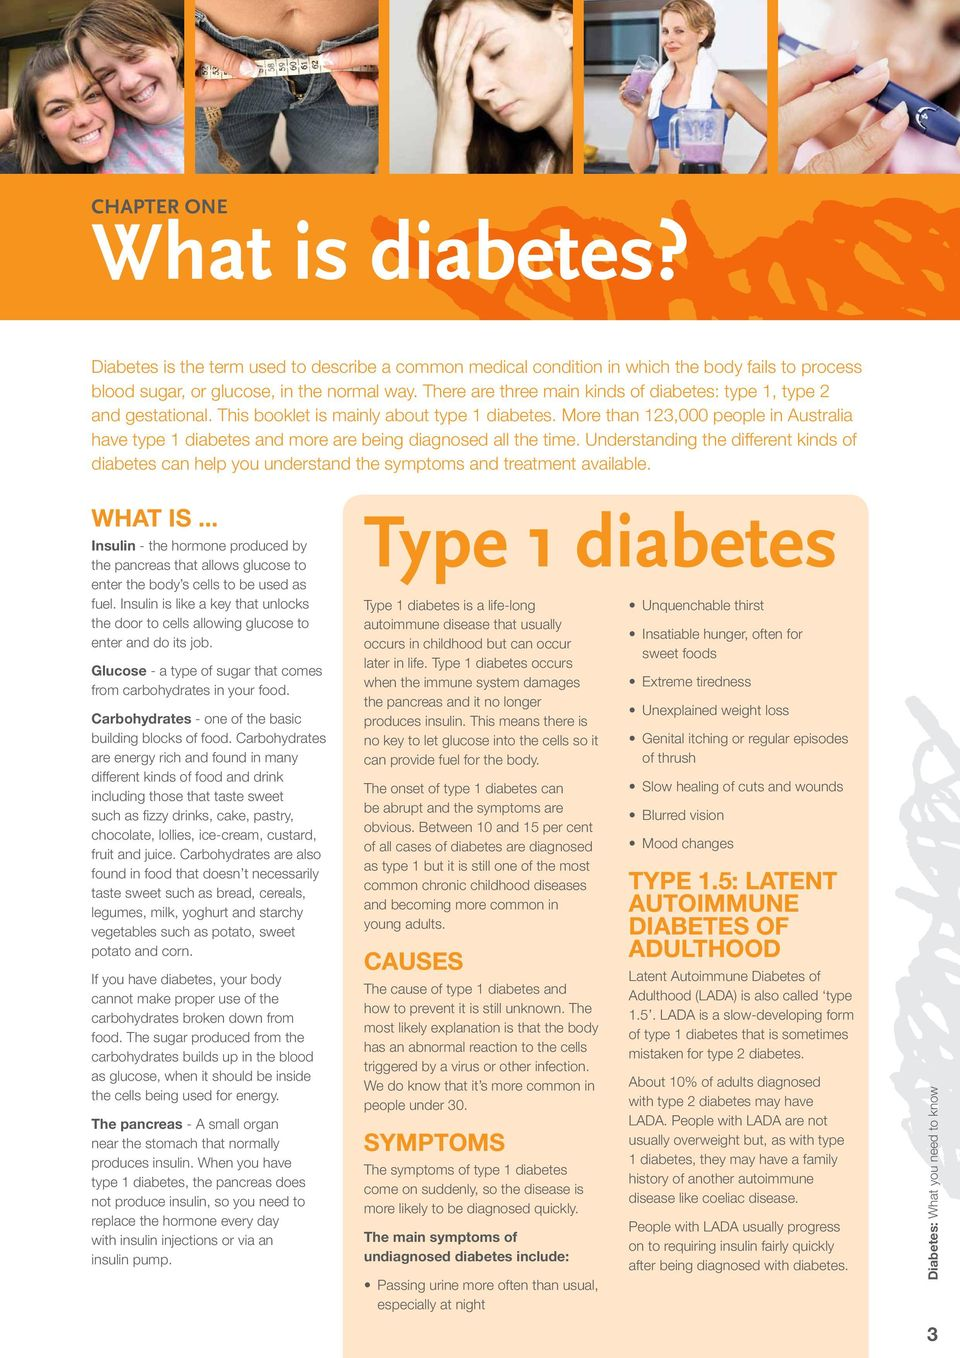 More than 123,000 people in Australia have type 1 diabetes and more are being diagnosed all the time.